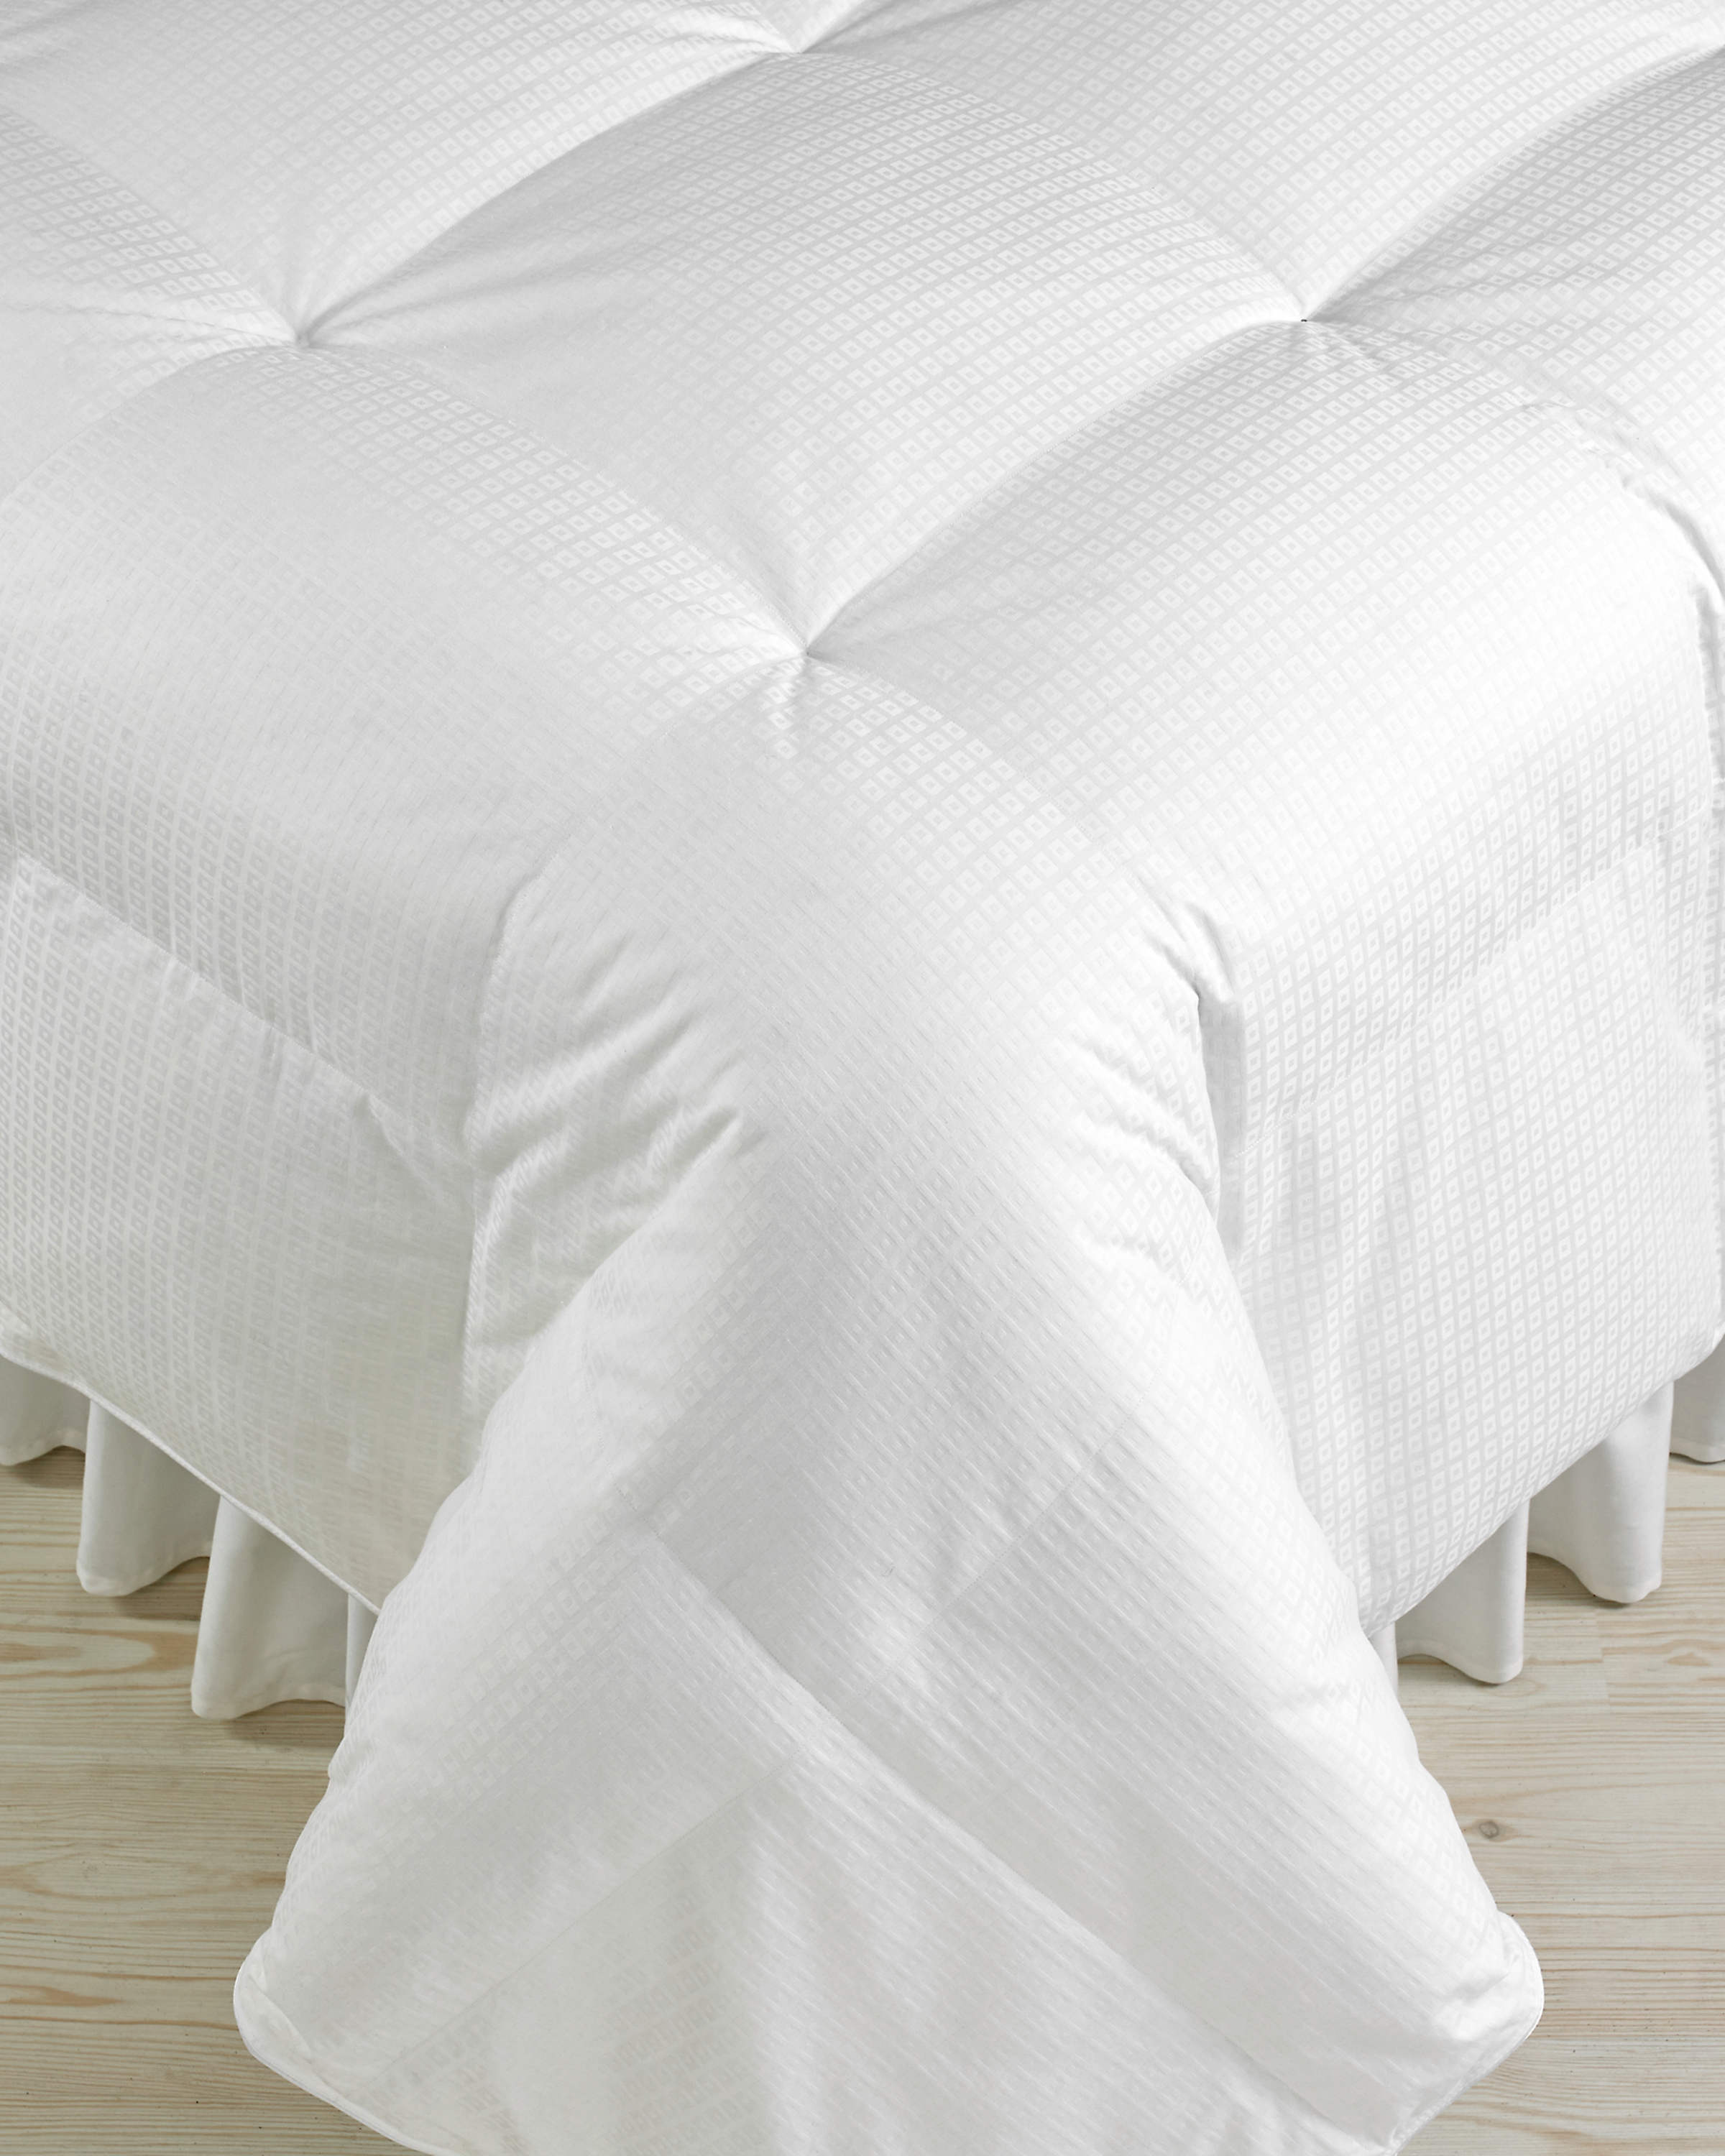 macys-registry-3-hotel-collection-lightweight-down-comforter-0115.jpg